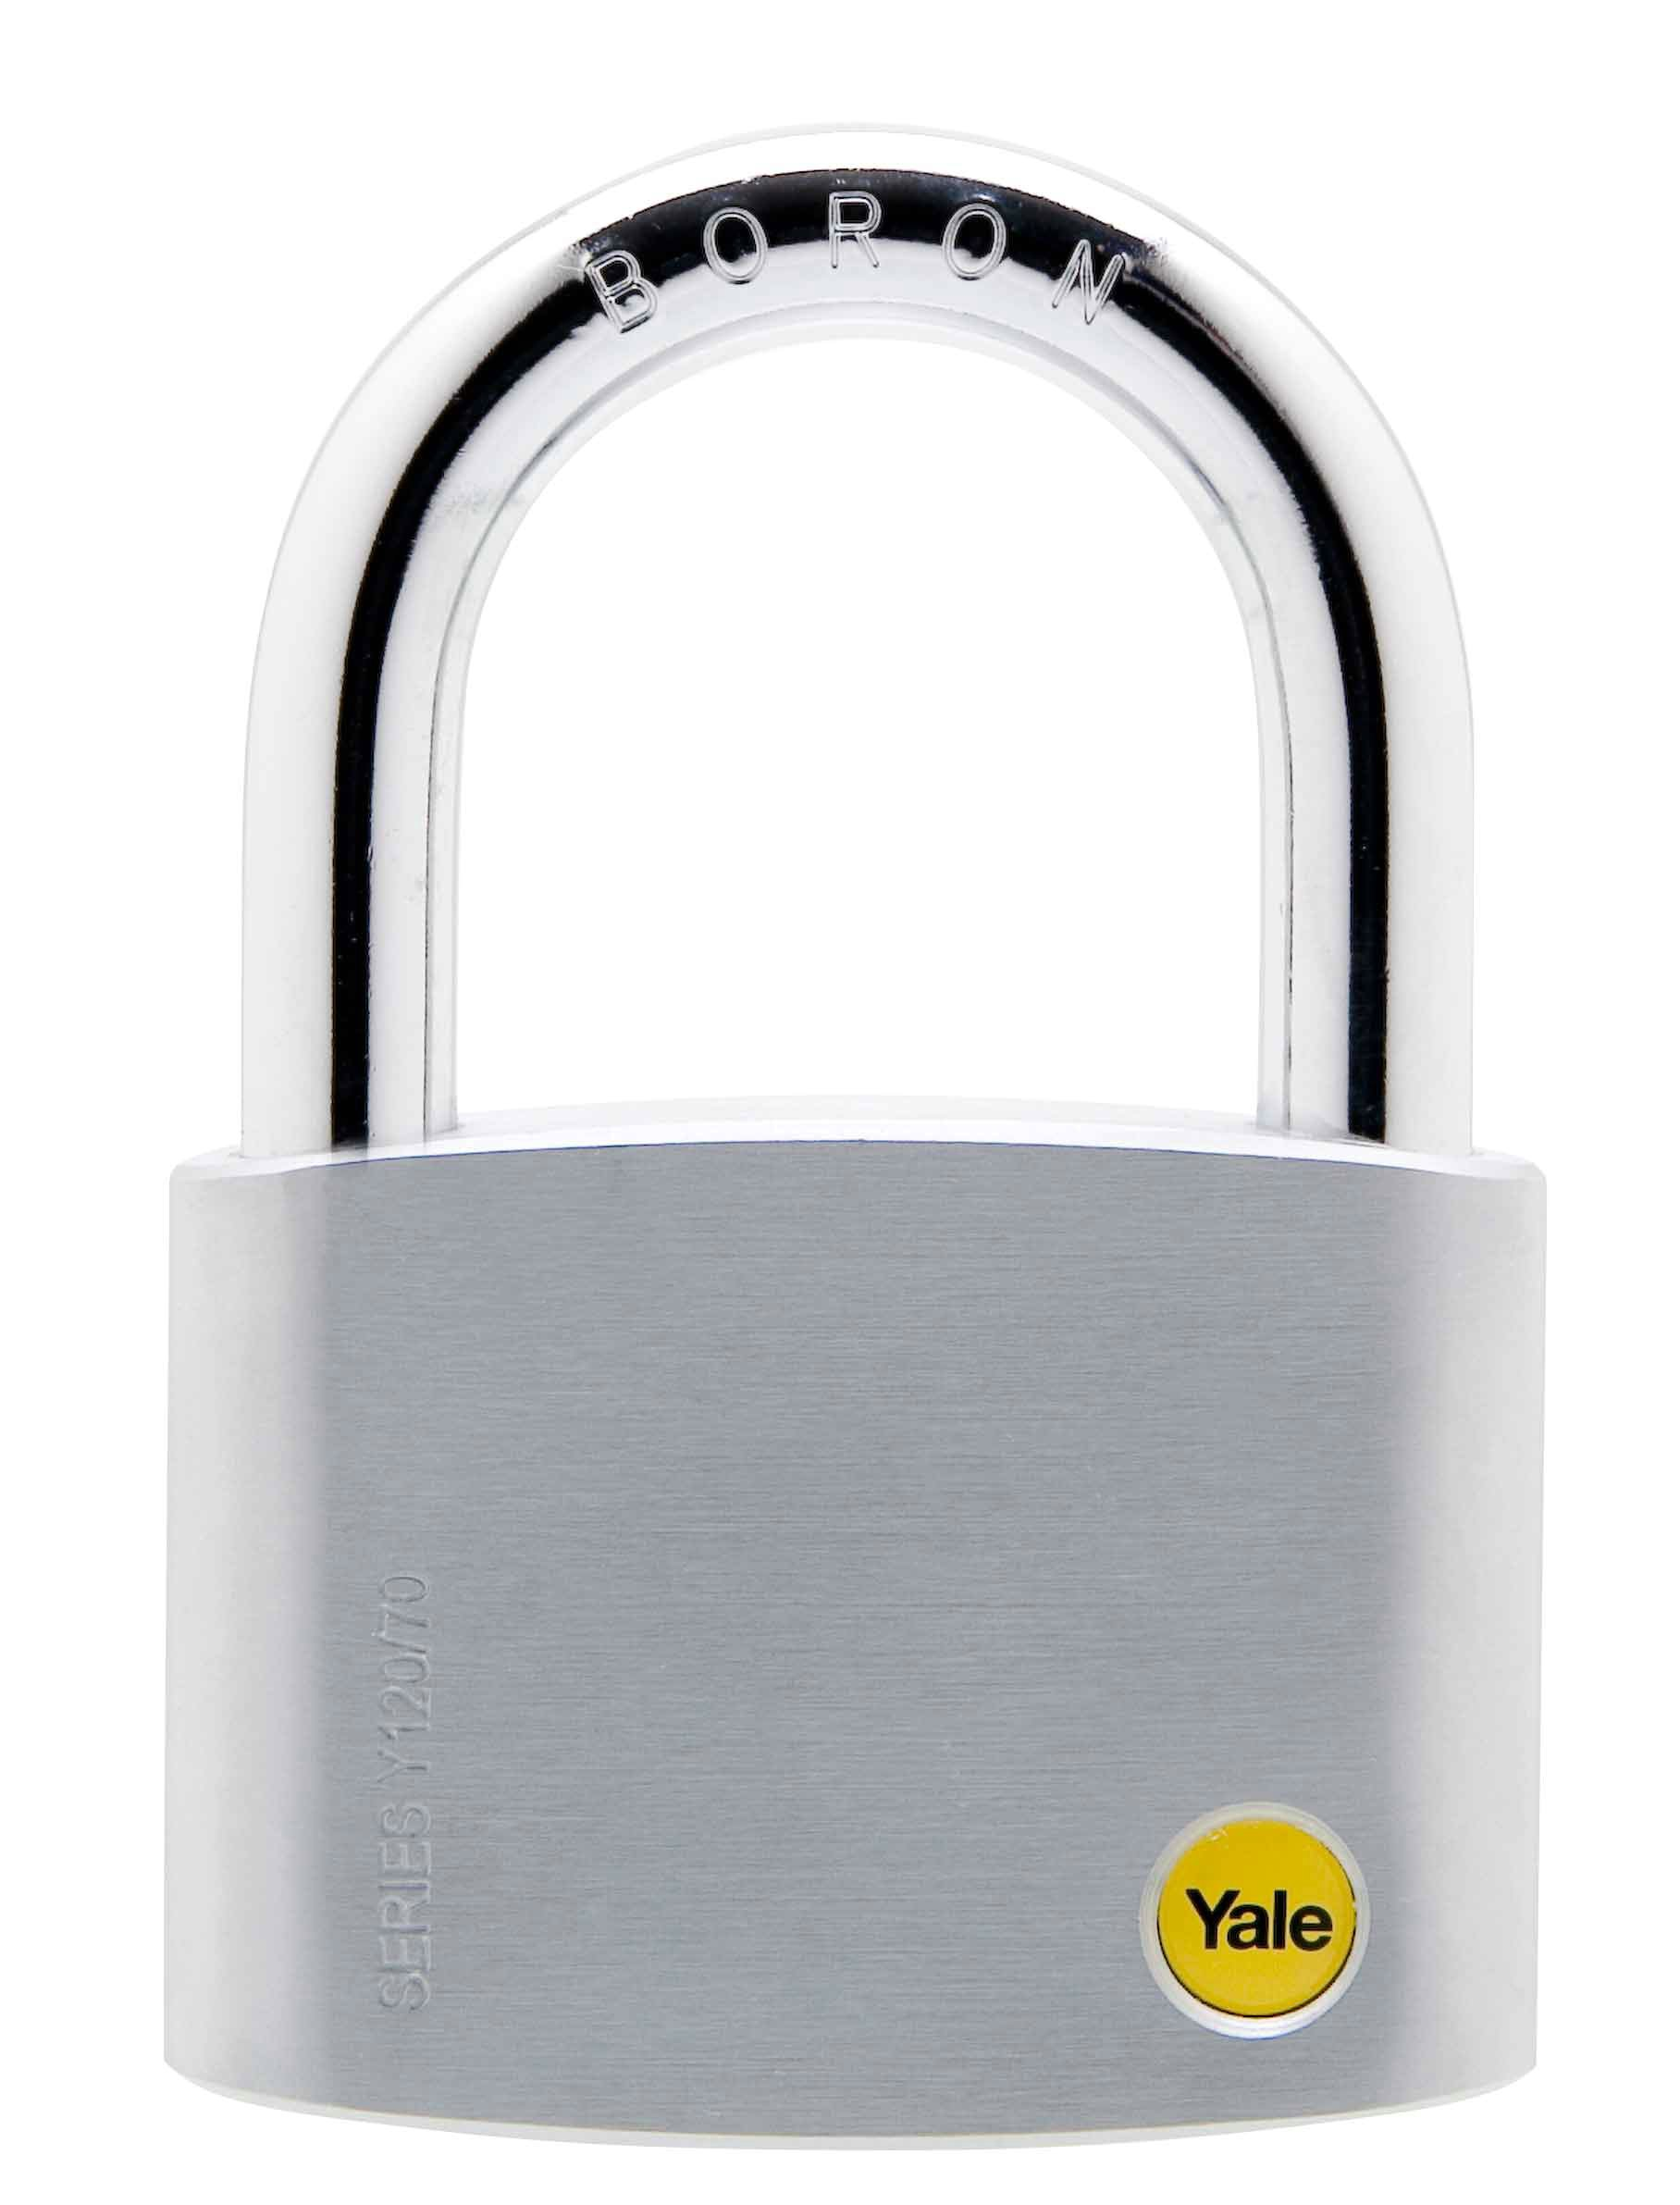 Y120/70/141 - Yale Silver Series Outdoor Brass / Satin Padlock (Boron Shackle) 70mm